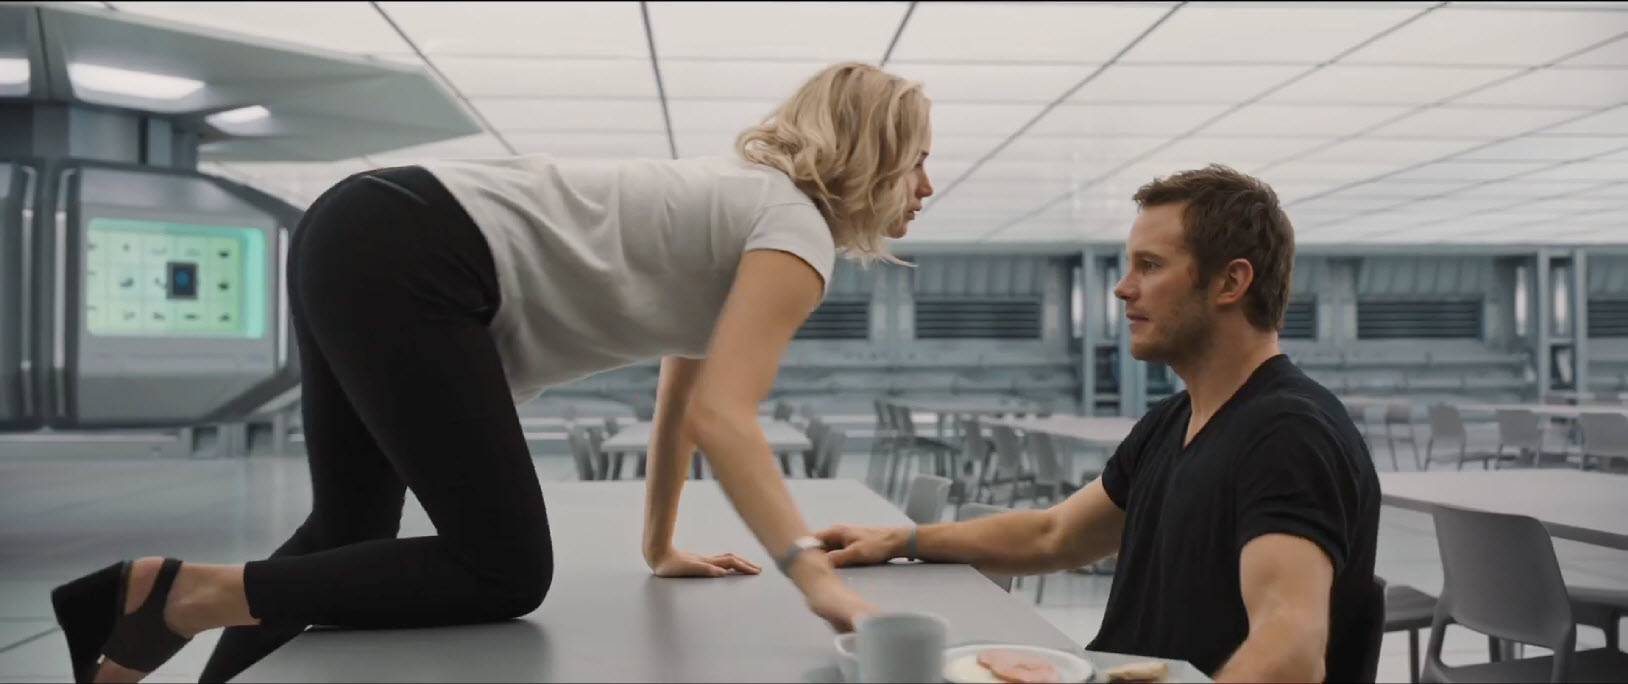 passengers jennifer lawrence crawling for chris pratt